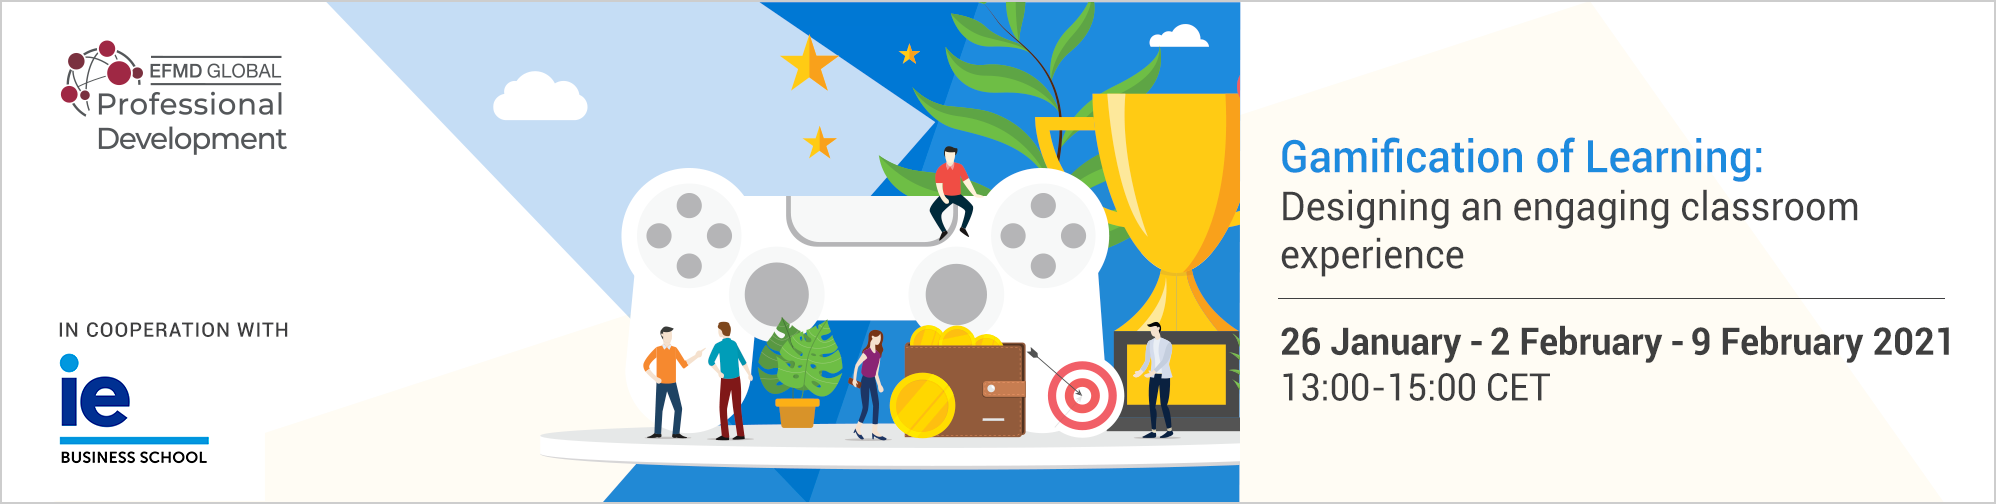 Gamification of Learning: Designing an engaging classroom experience